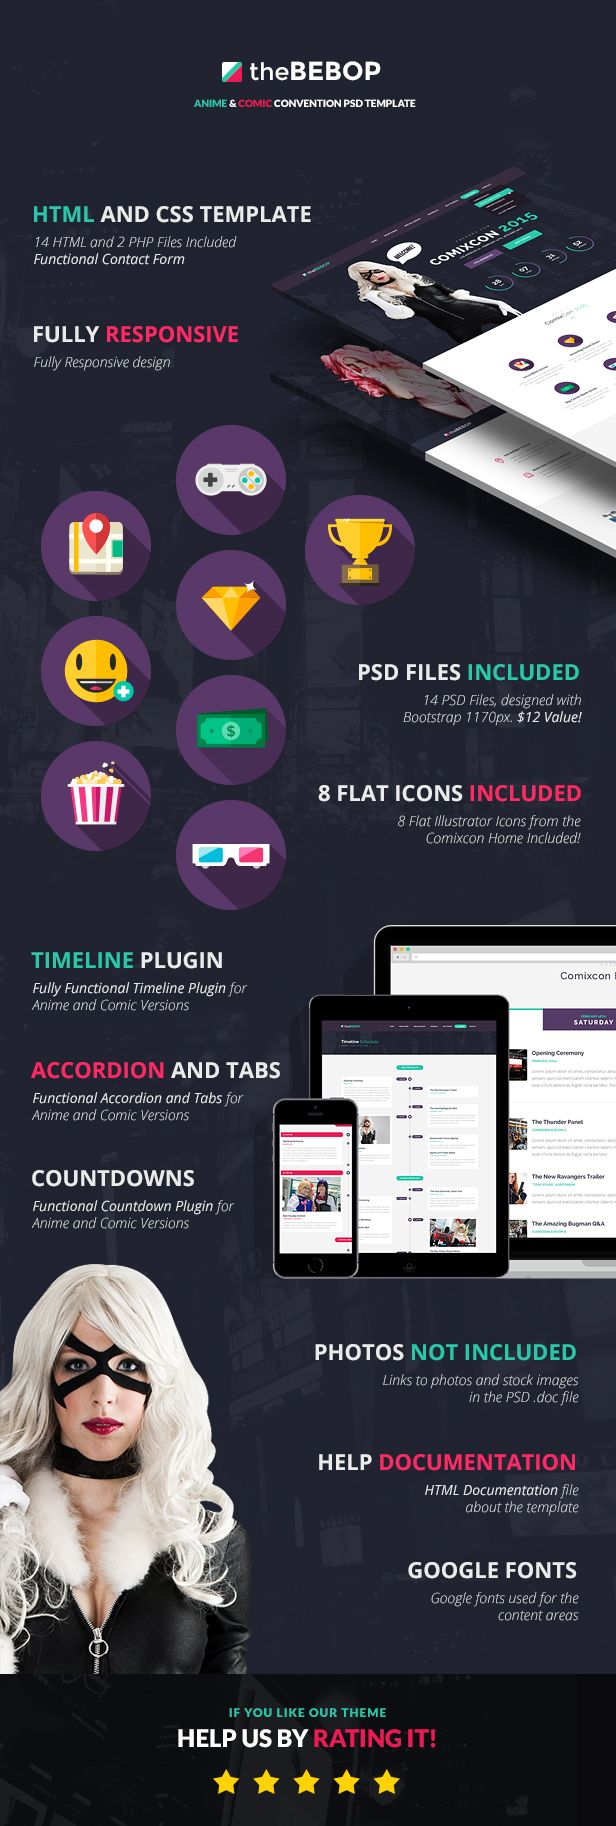 The Bebop Anime and Comic HTML Convention Template - 7